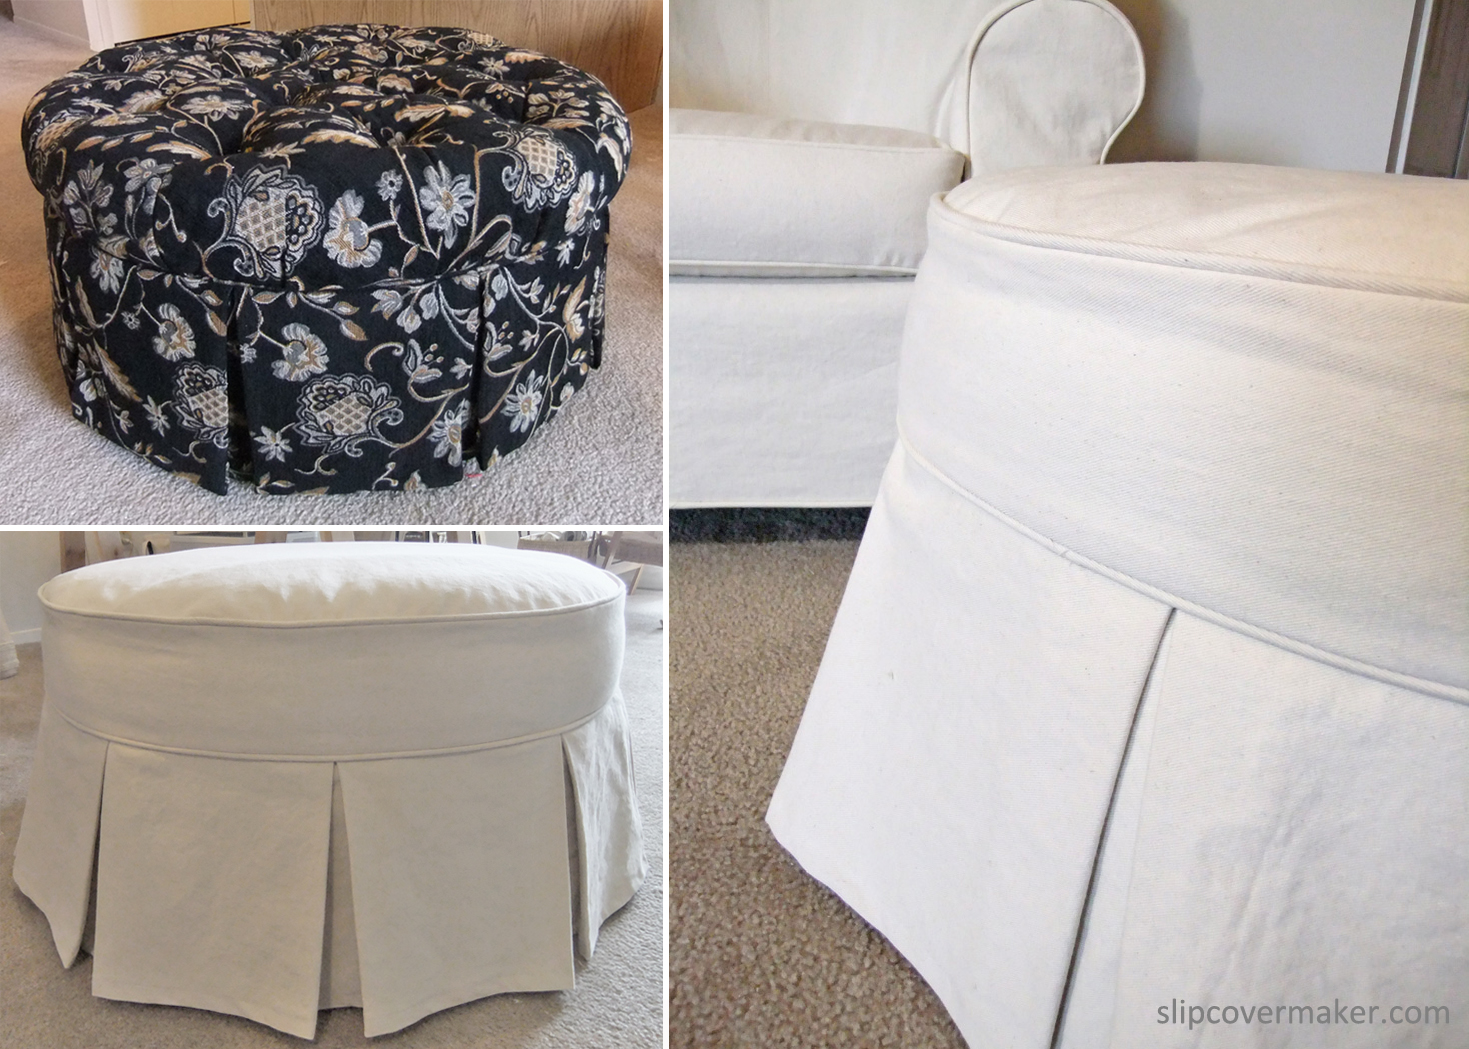 Ottoman Slipcover From Tufted To Tailored The Slipcover